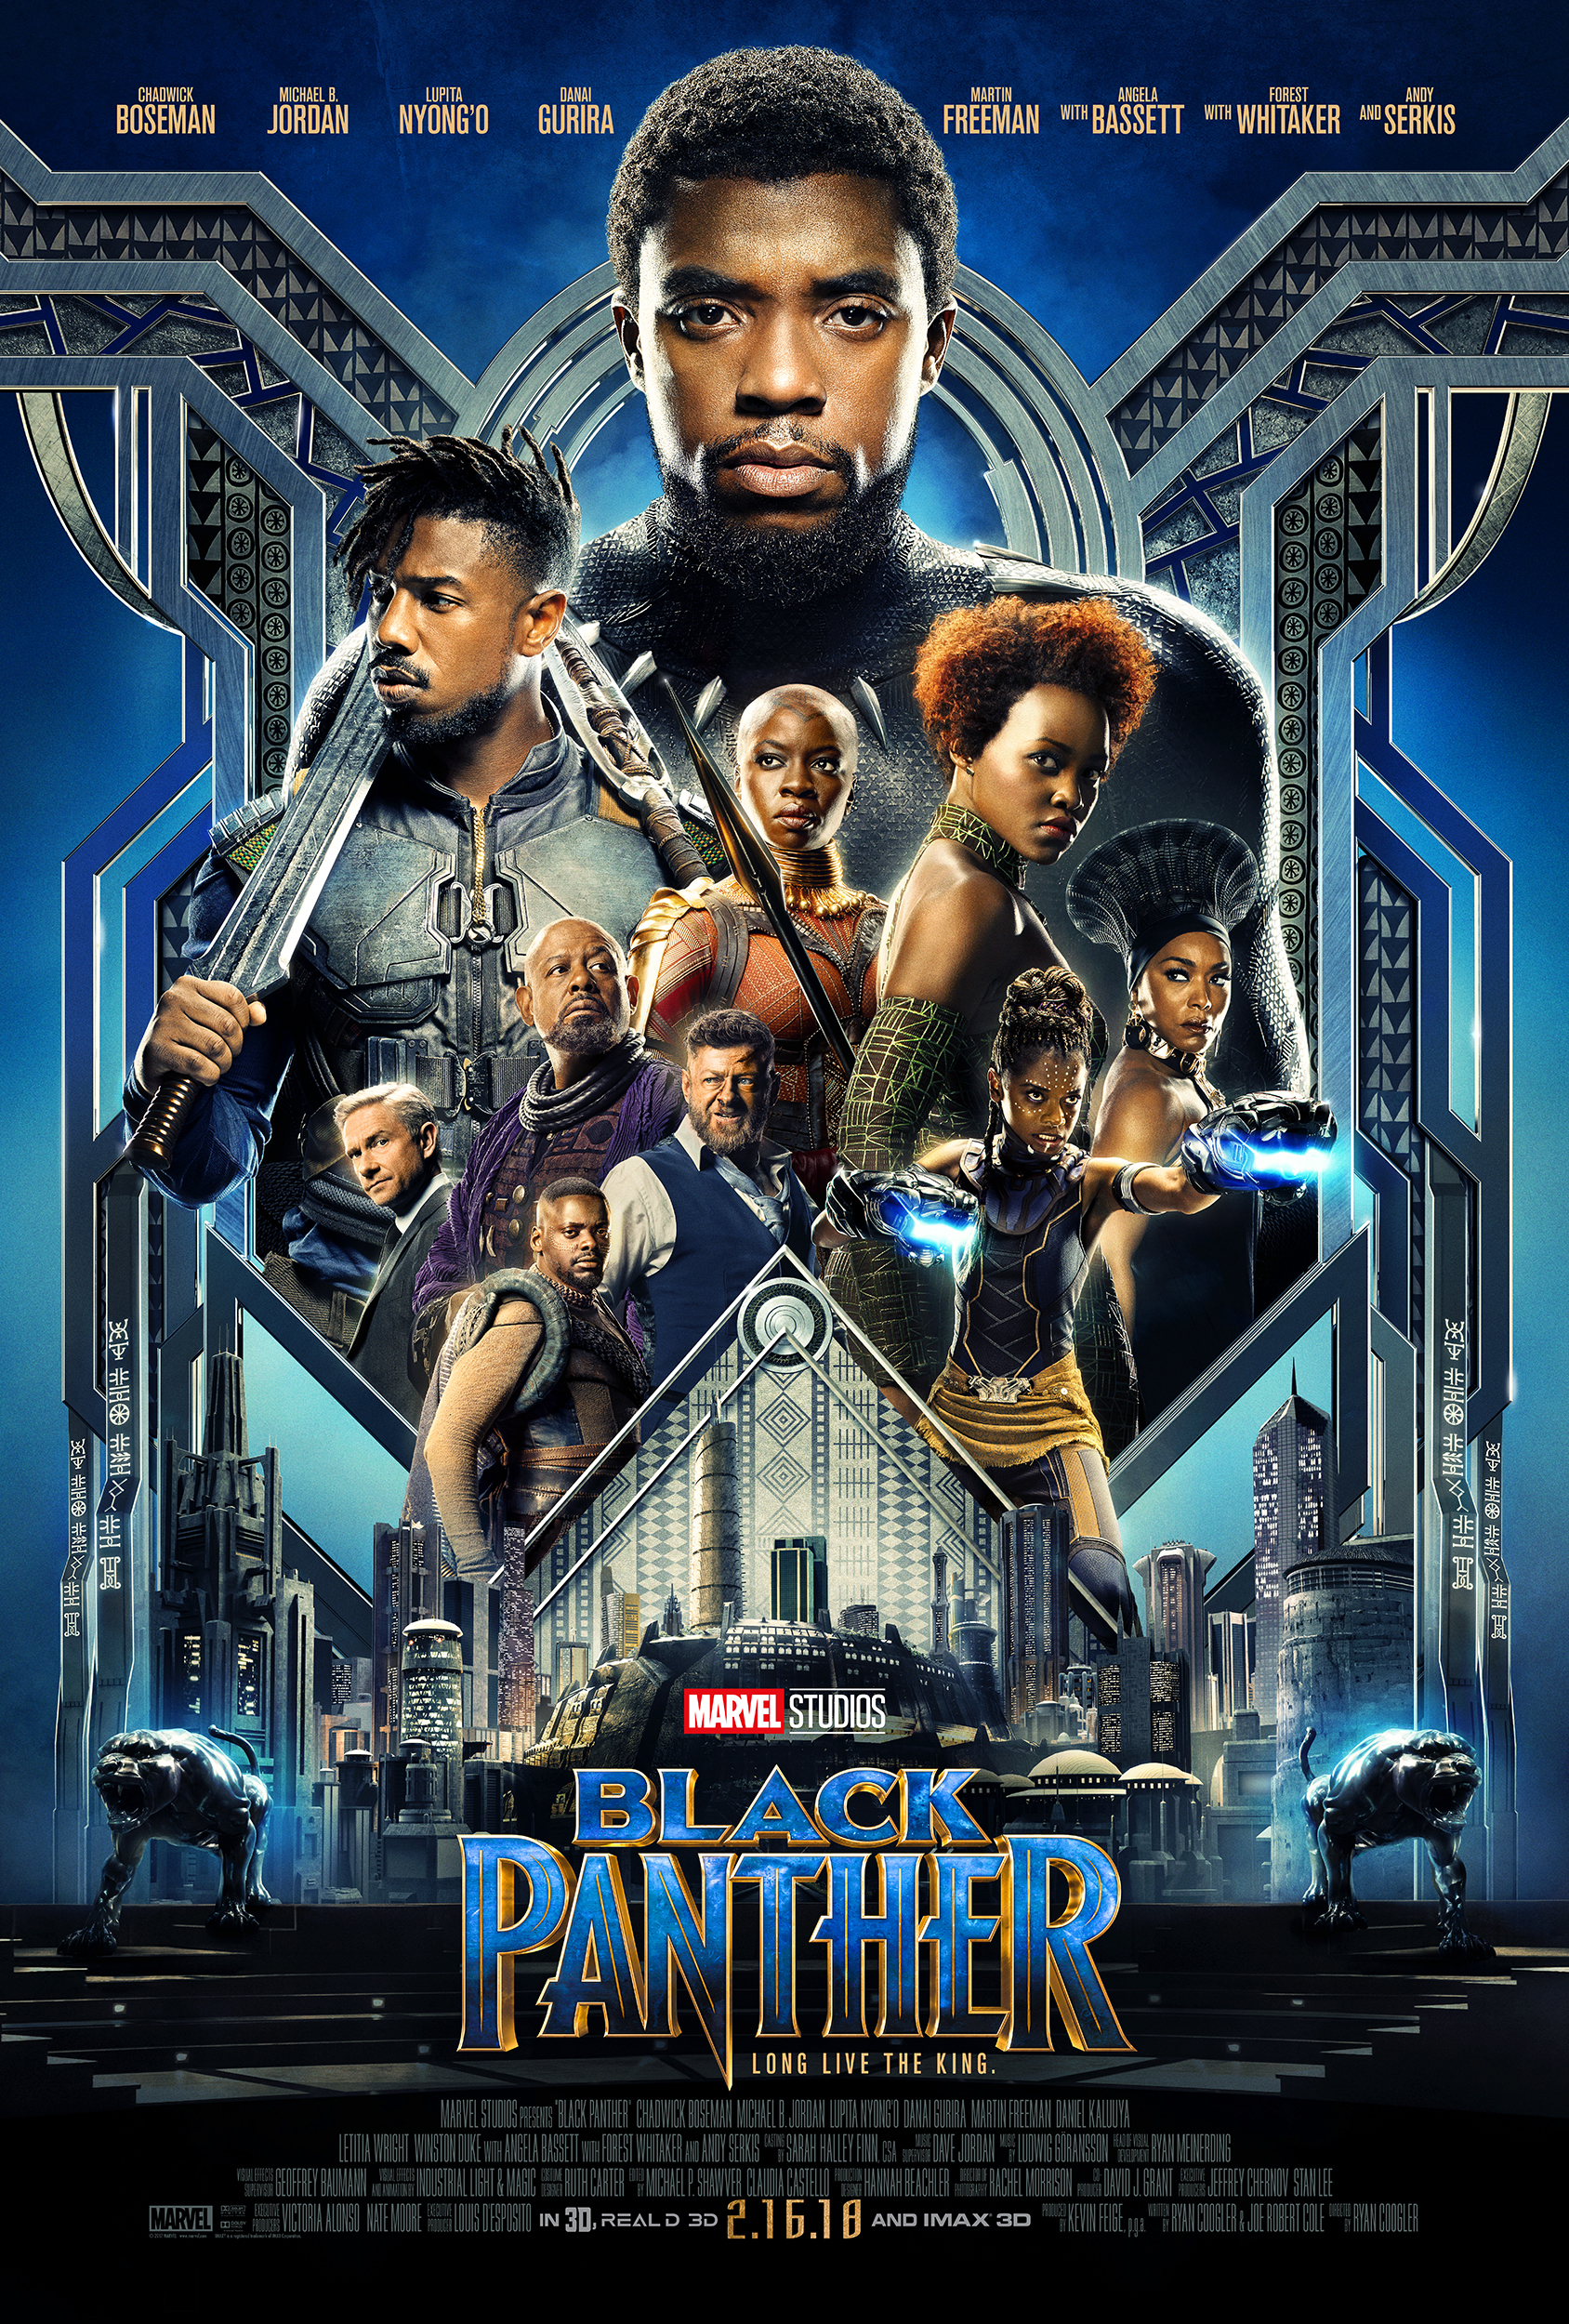 Black Panther Multicultural Movie Review_4